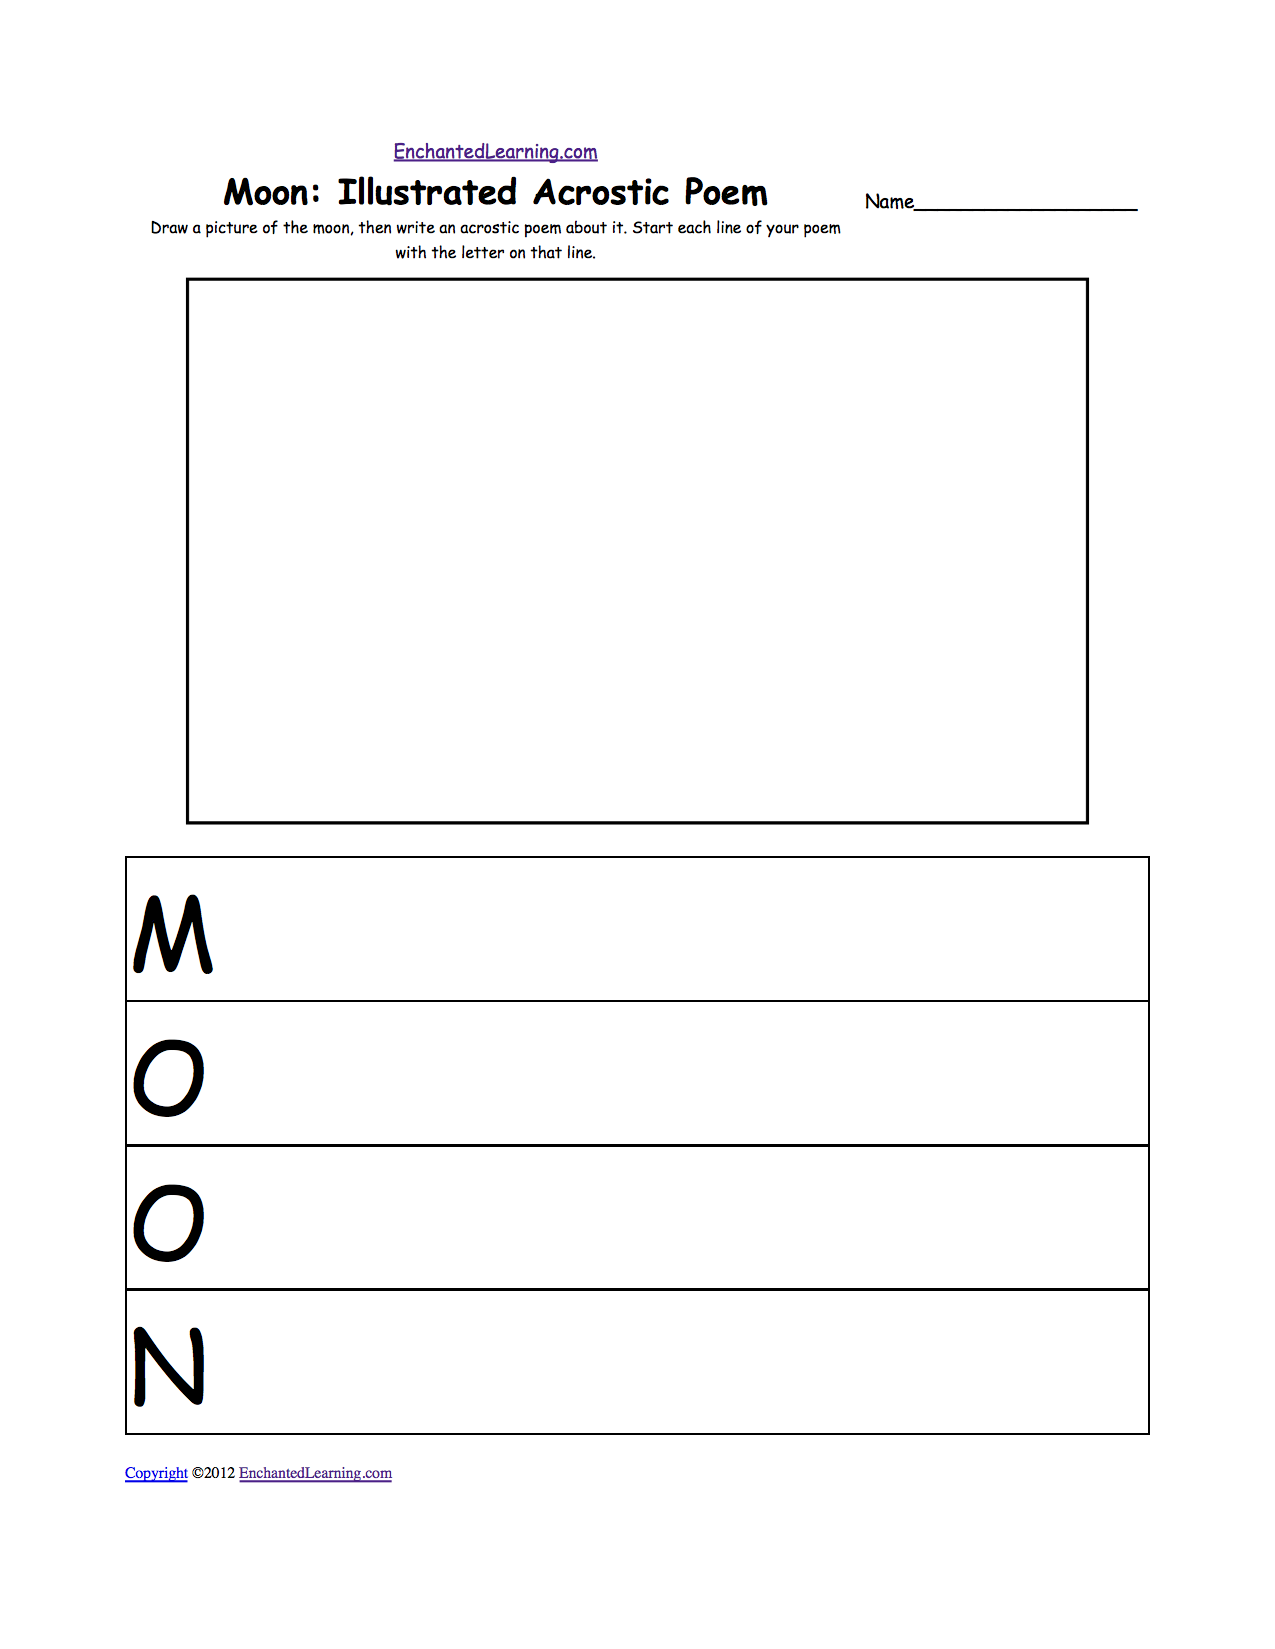 moon illustrated acrostic poem draw a picture of the moon then write ...